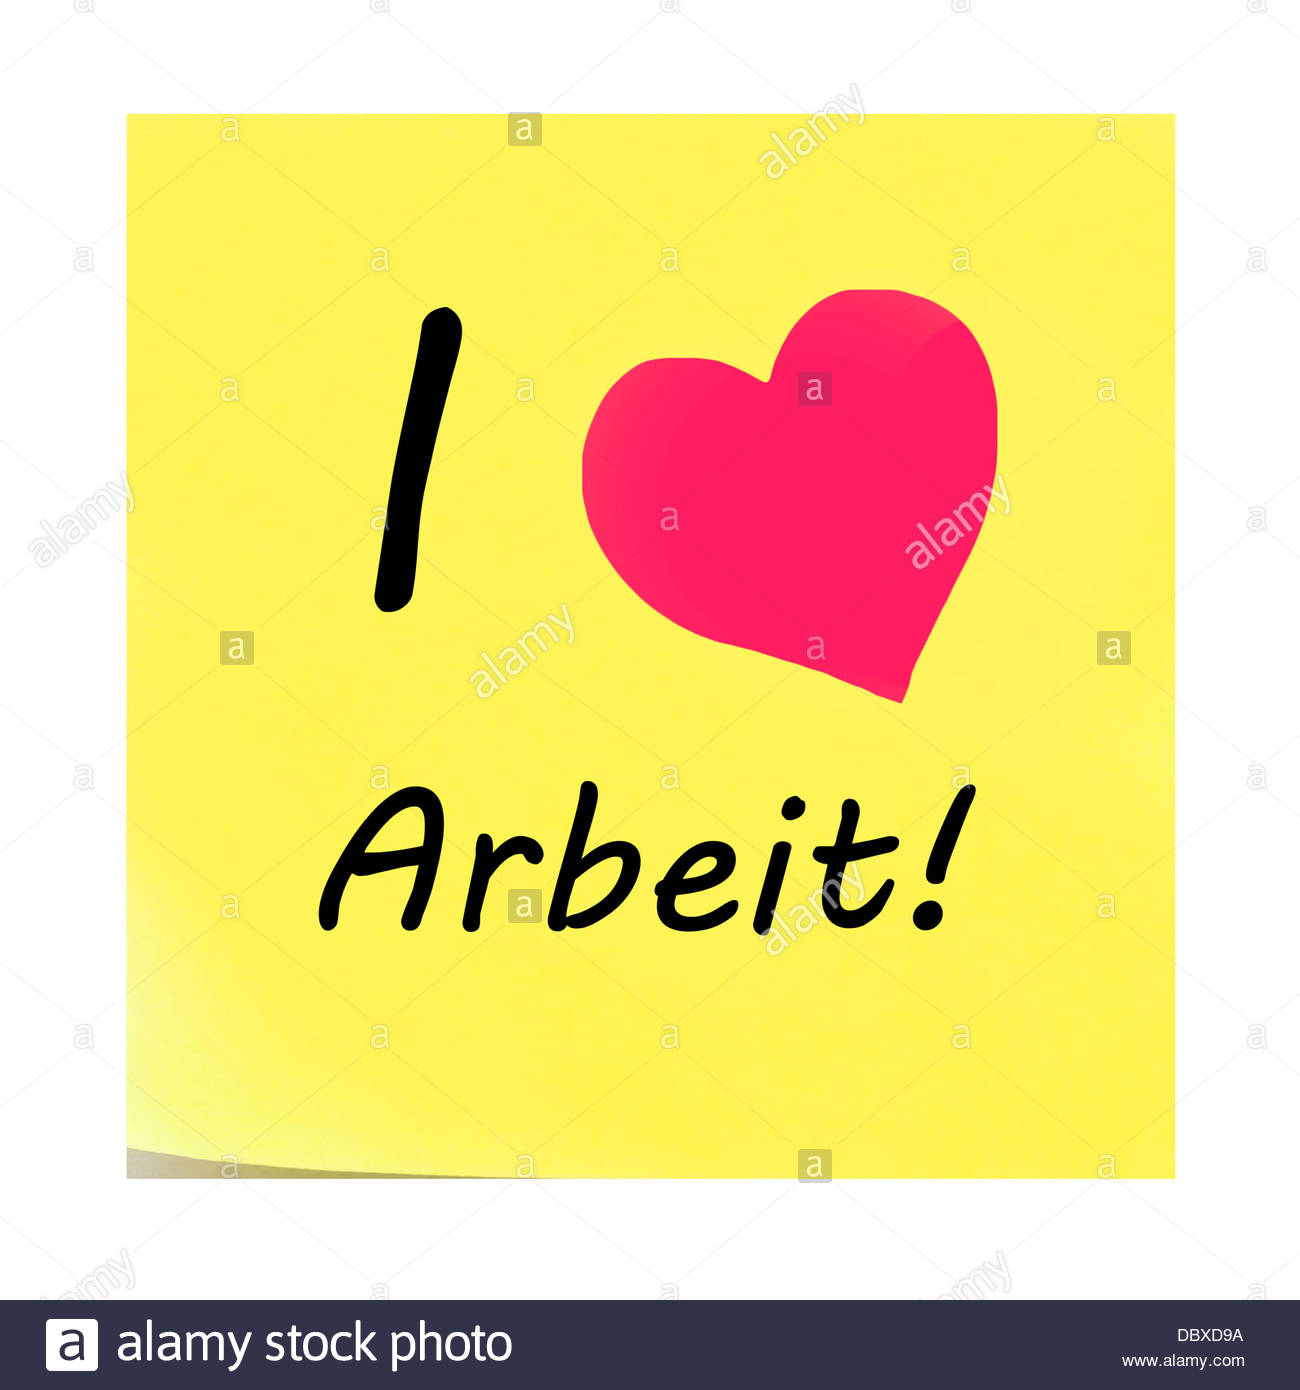 I liebe Arbeit! post it sticky yellow note. - Stock Image